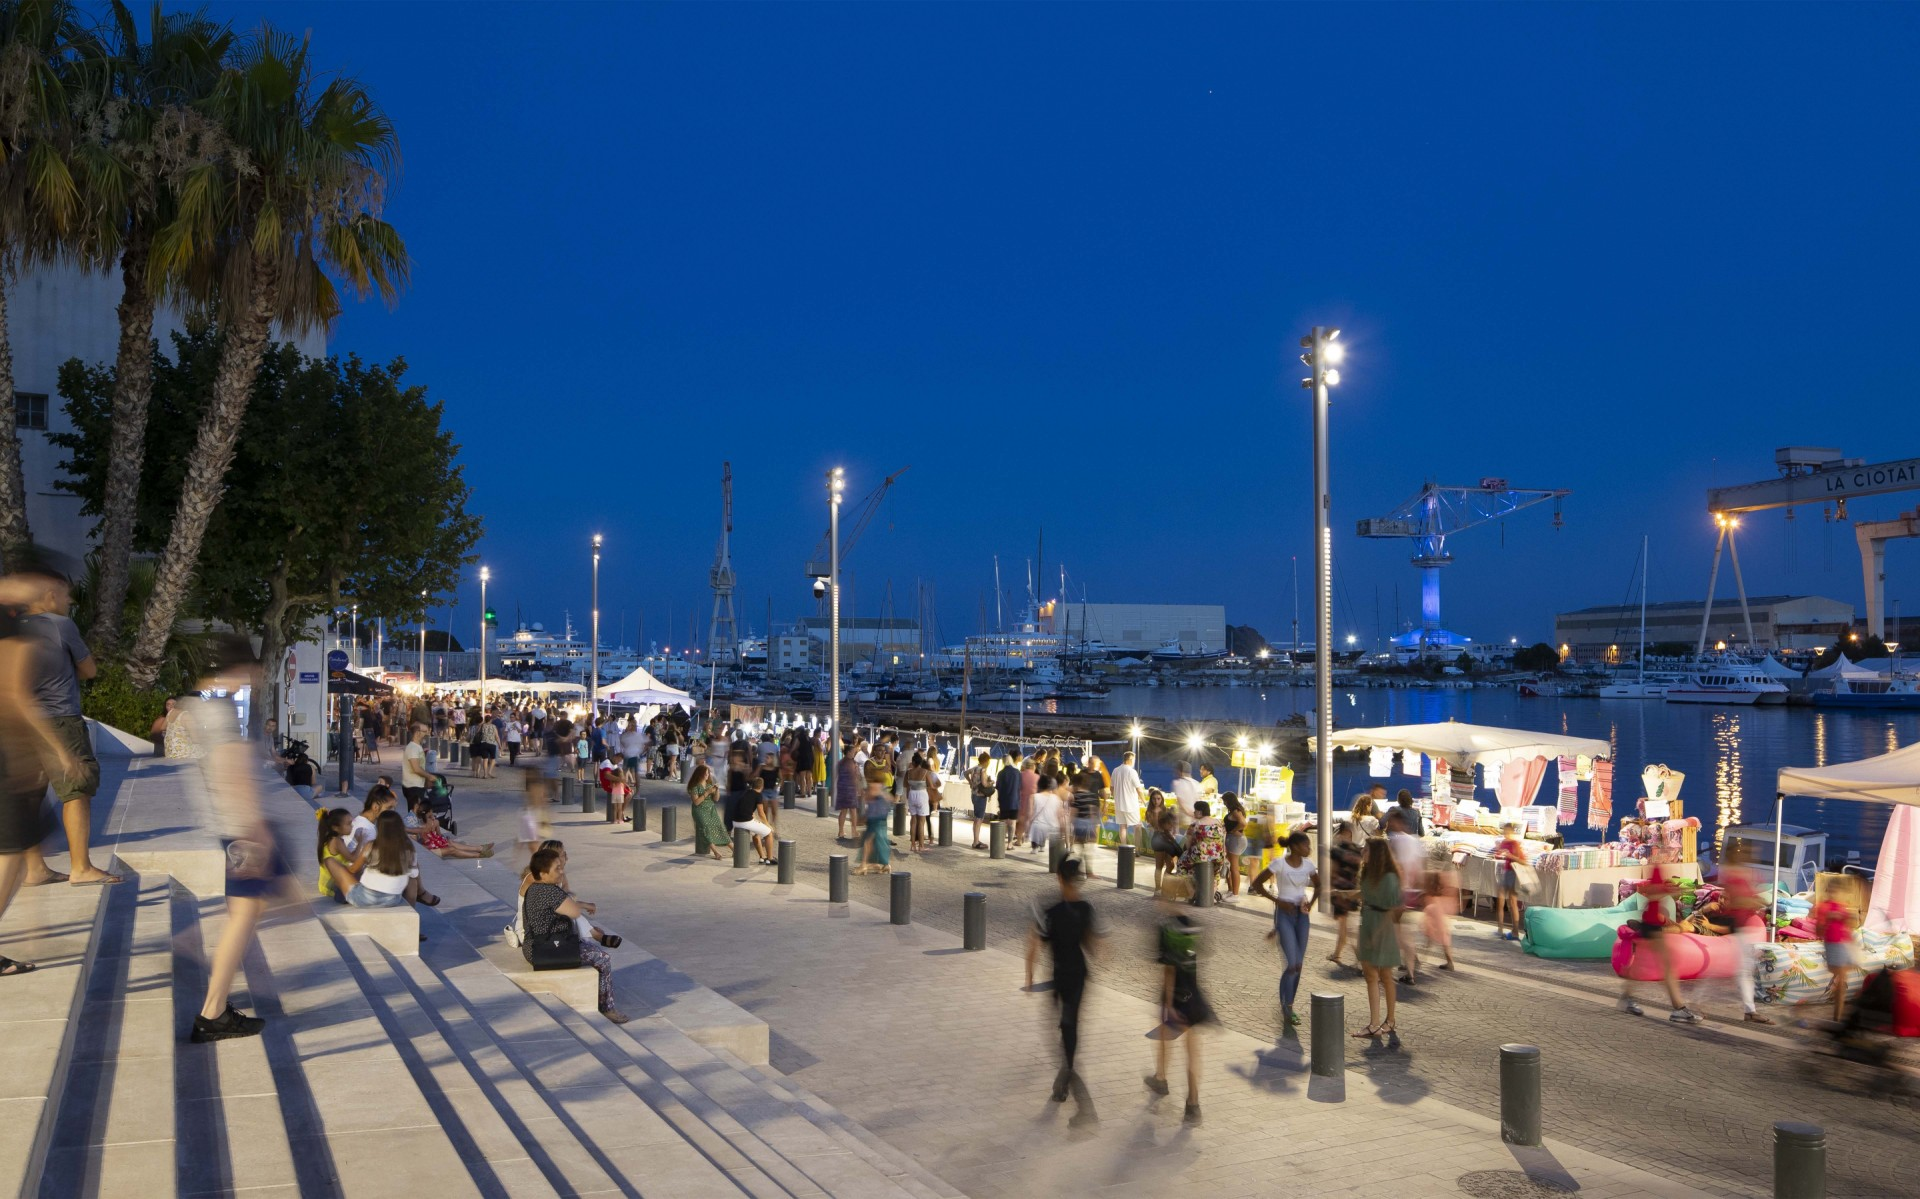 The main objective was to transform the Old Port of La Ciotat into a convivial space for citizens and visitors. – Xavier Boymond